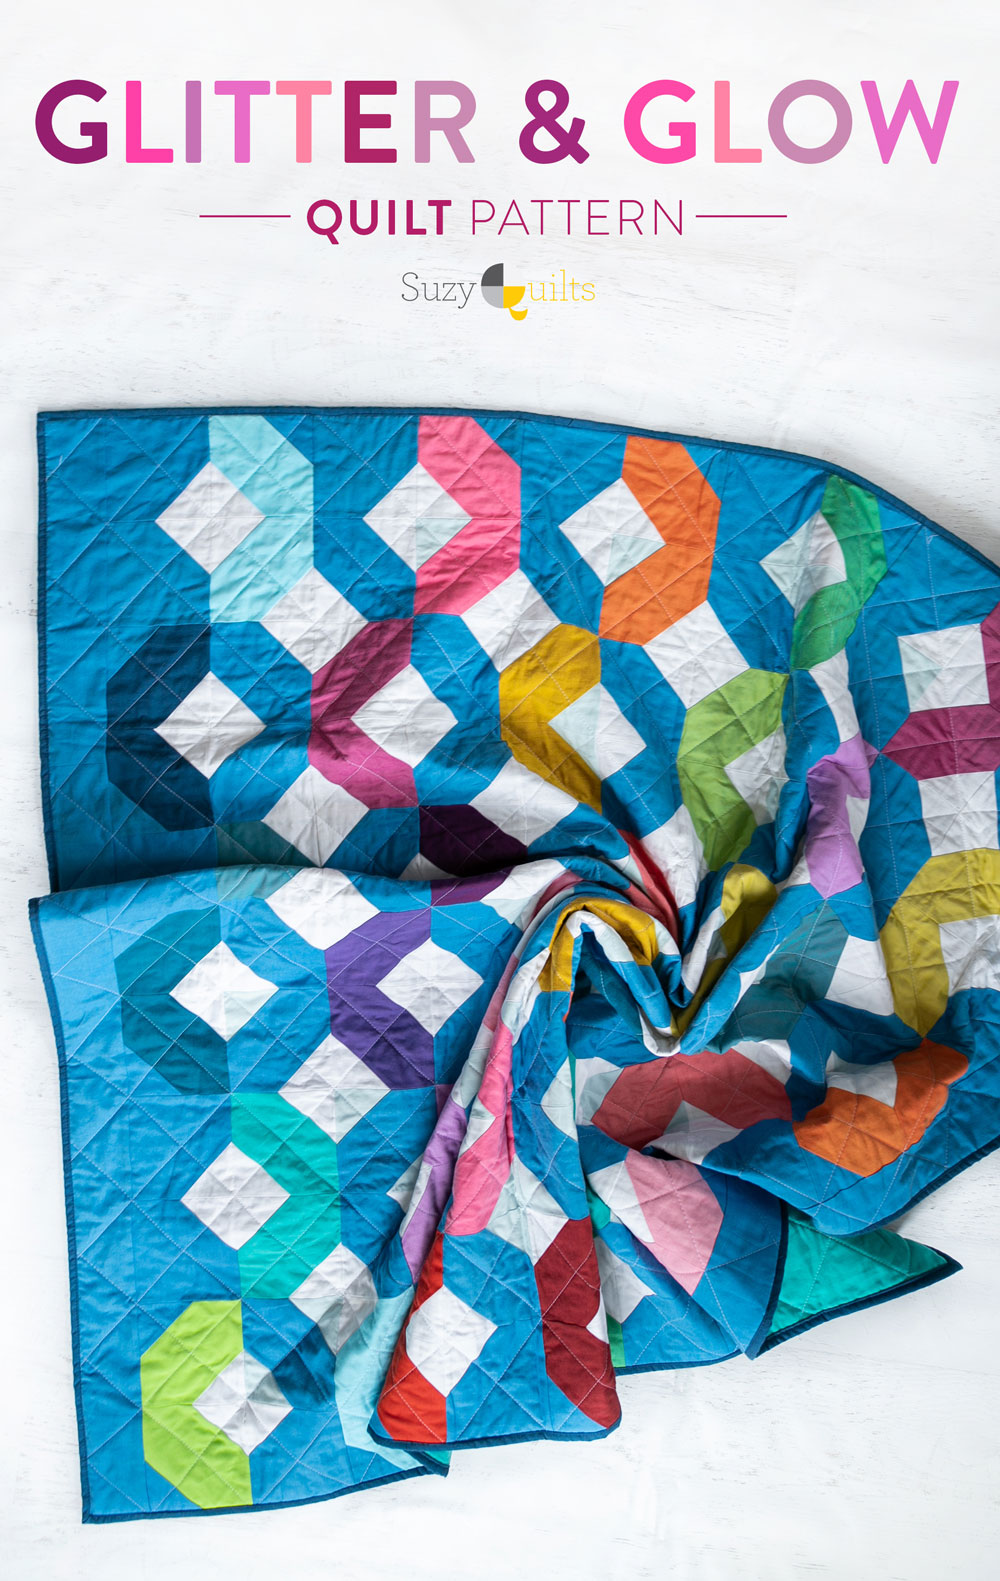 Make a Rainbow Quilt using this simple alteration to the Glitter & Glow quilt pattern. This is fat quarter friendly and great for newbie quilters and beginners. suzyquilts.com #rainbowquilt #rainbowbaby